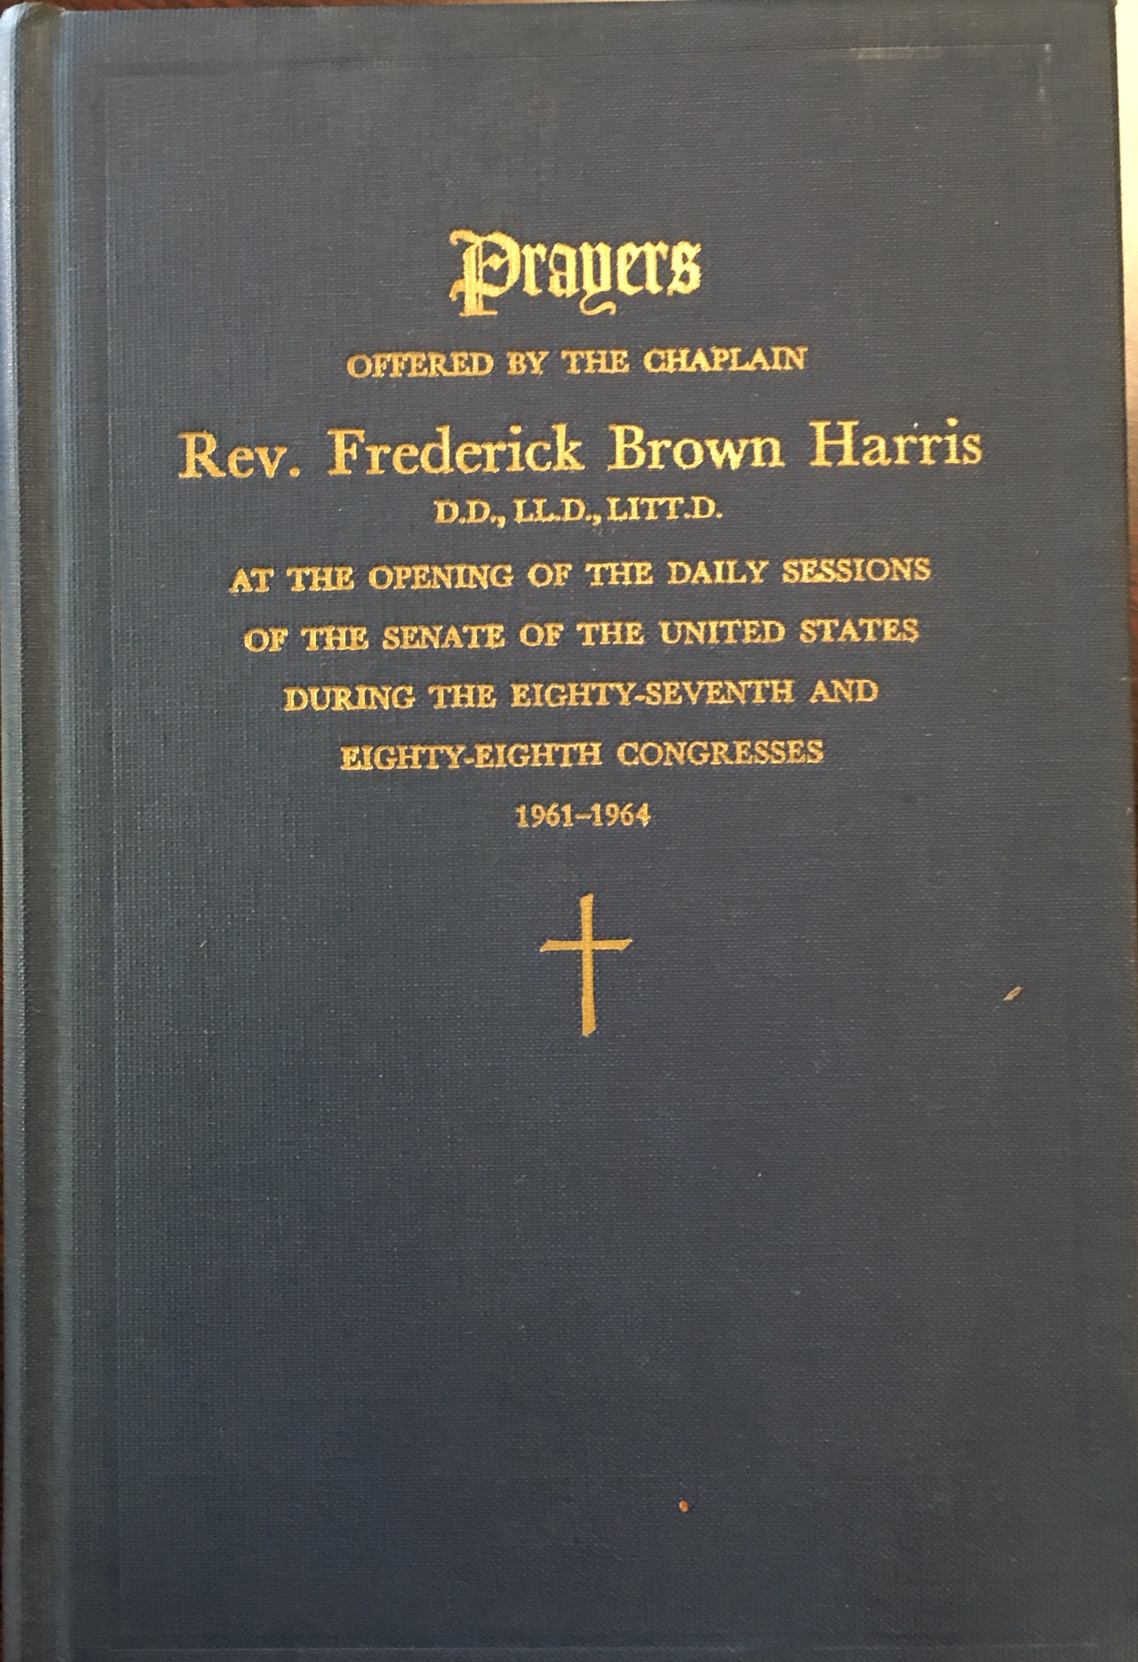 Image for Prayers Offered by the Chaplain Rev. Frederick Brown Harris D.D., LL. D., LITT. D. at the opening of the daily sessions of the Senate of the United States during the Eighty-Seventh and Eighty-Eighth Congresses 1961-1964